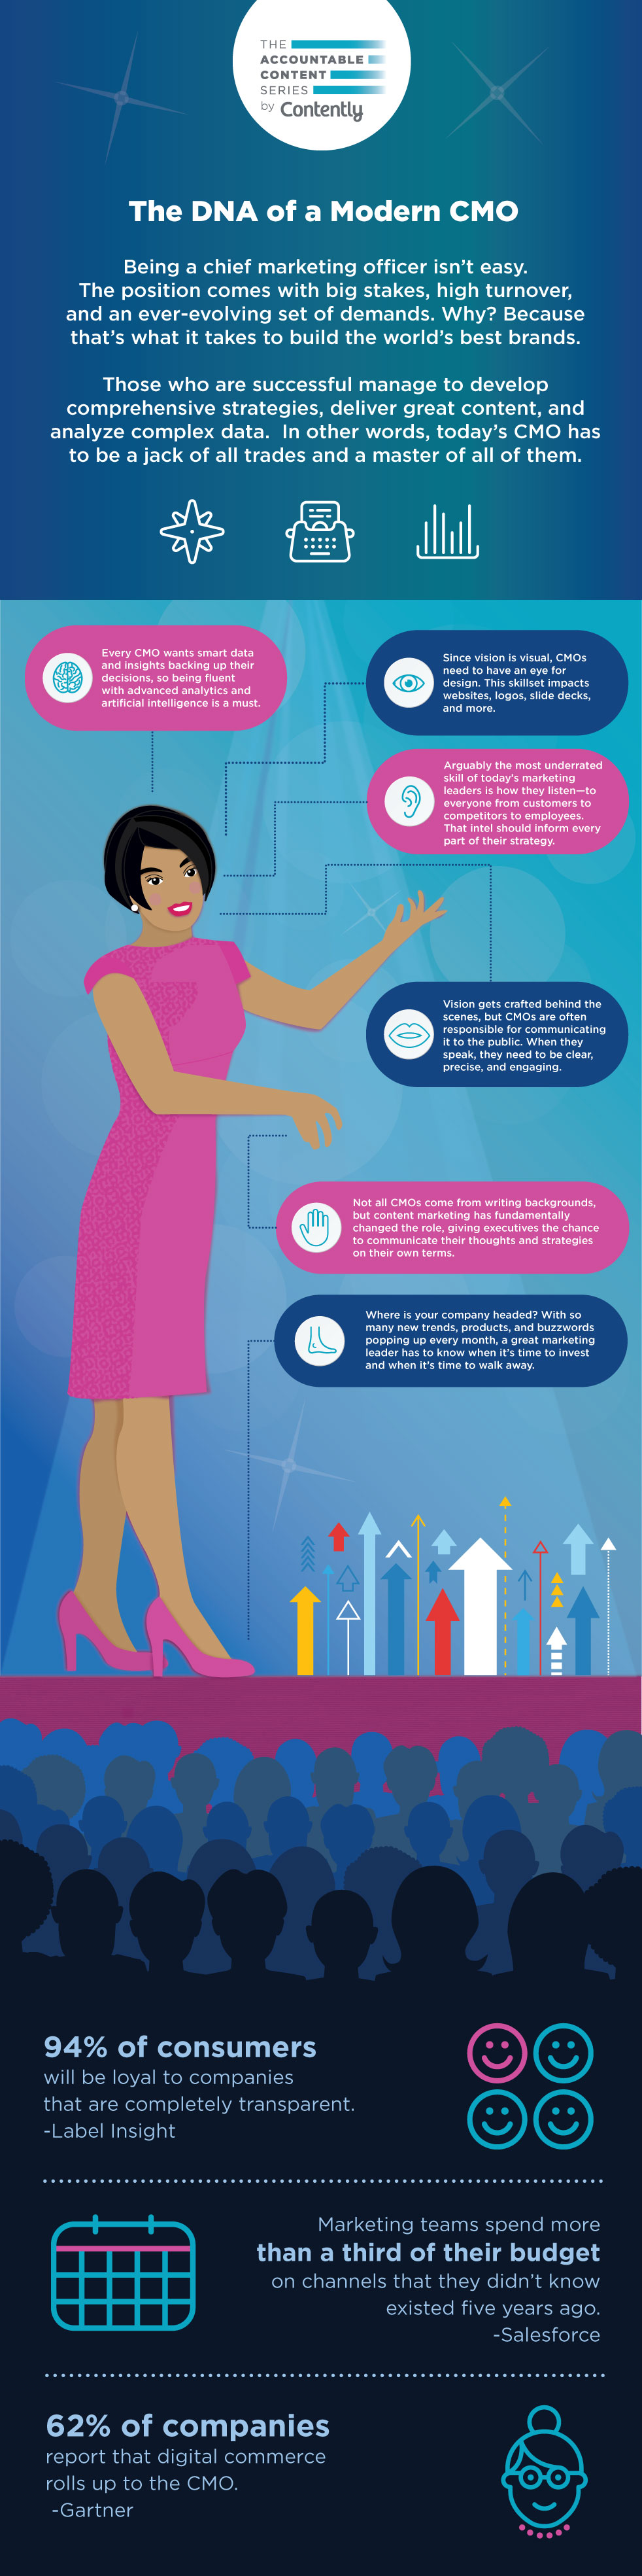 Infographic: The DNA of a Modern CMO